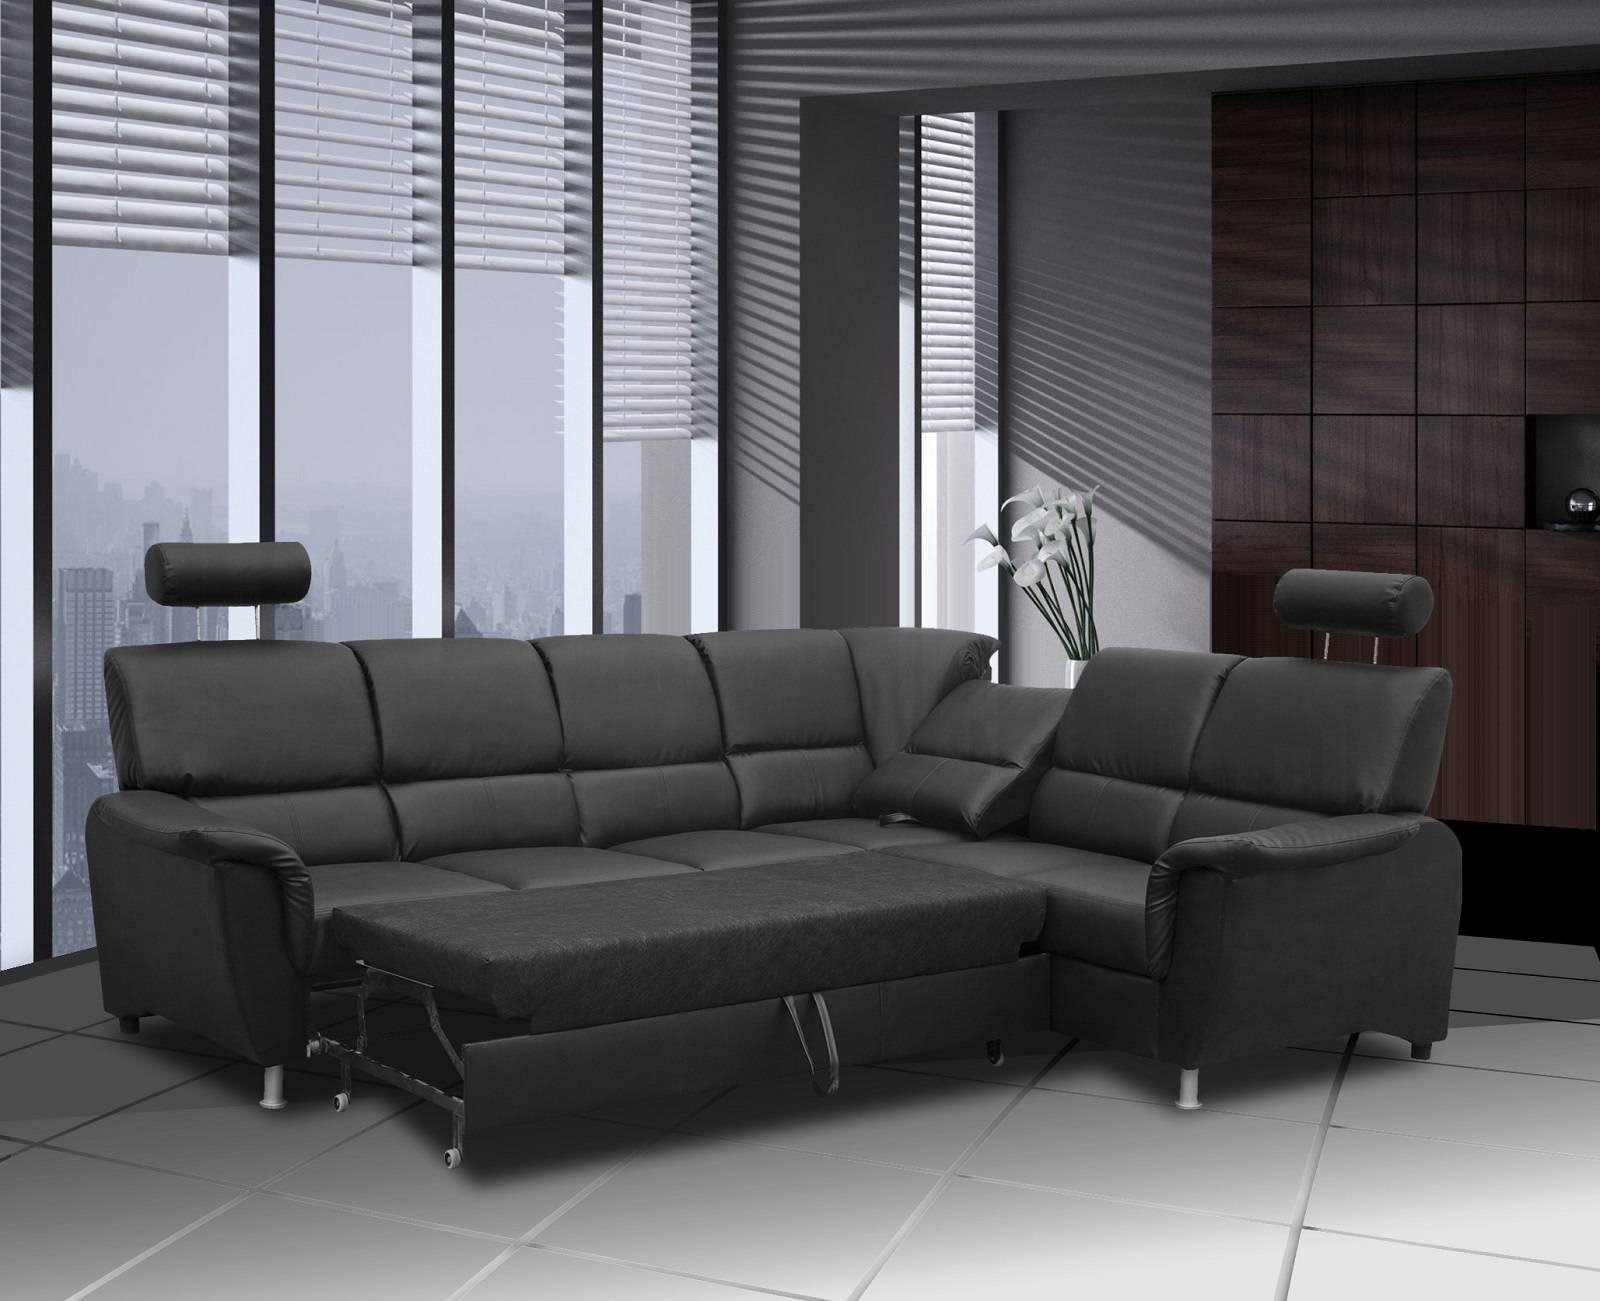 Slipcovers For Sectional Sofas With Chaise | Best Home Furniture regarding Sectional Sofa San Diego (Image 23 of 30)